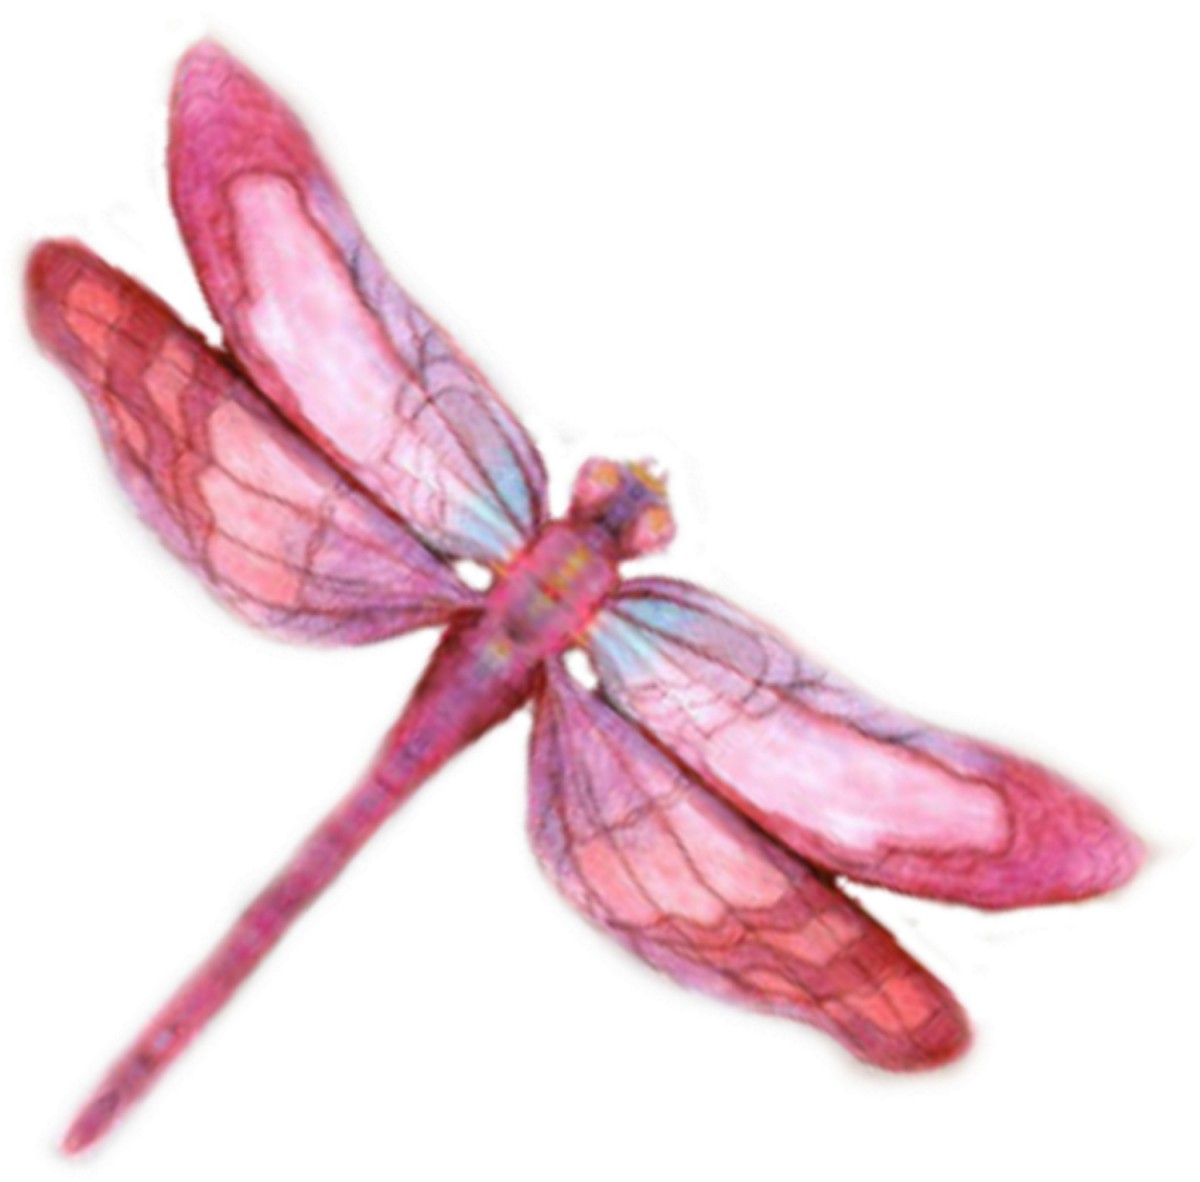 Our Fascination With Pretty Bugs - Art Inspired by the Dragonfly and Other Insects